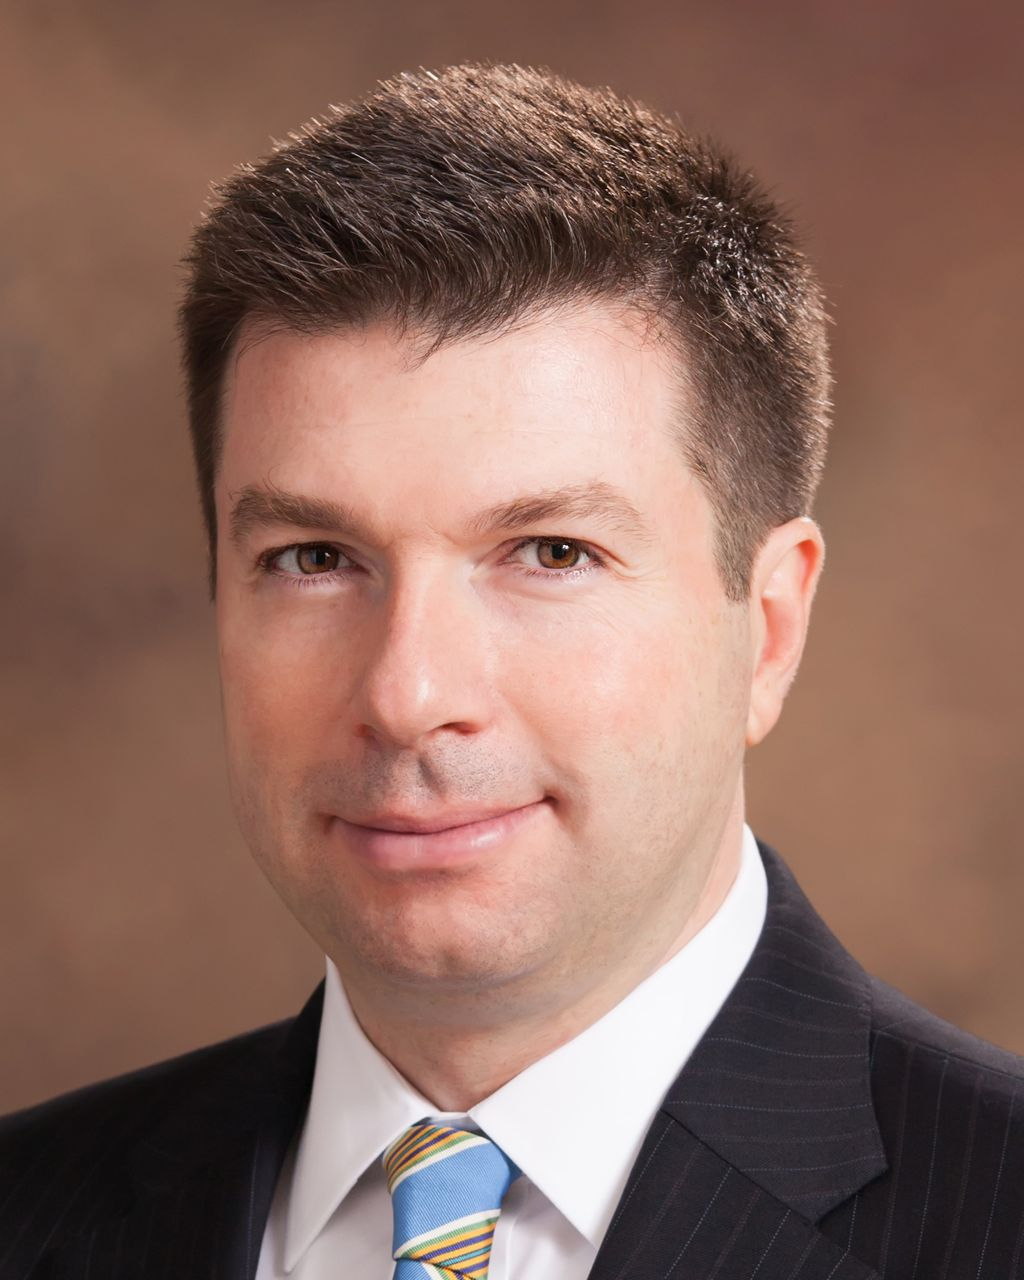 Patrick Cote, financial advisor Medfield MA